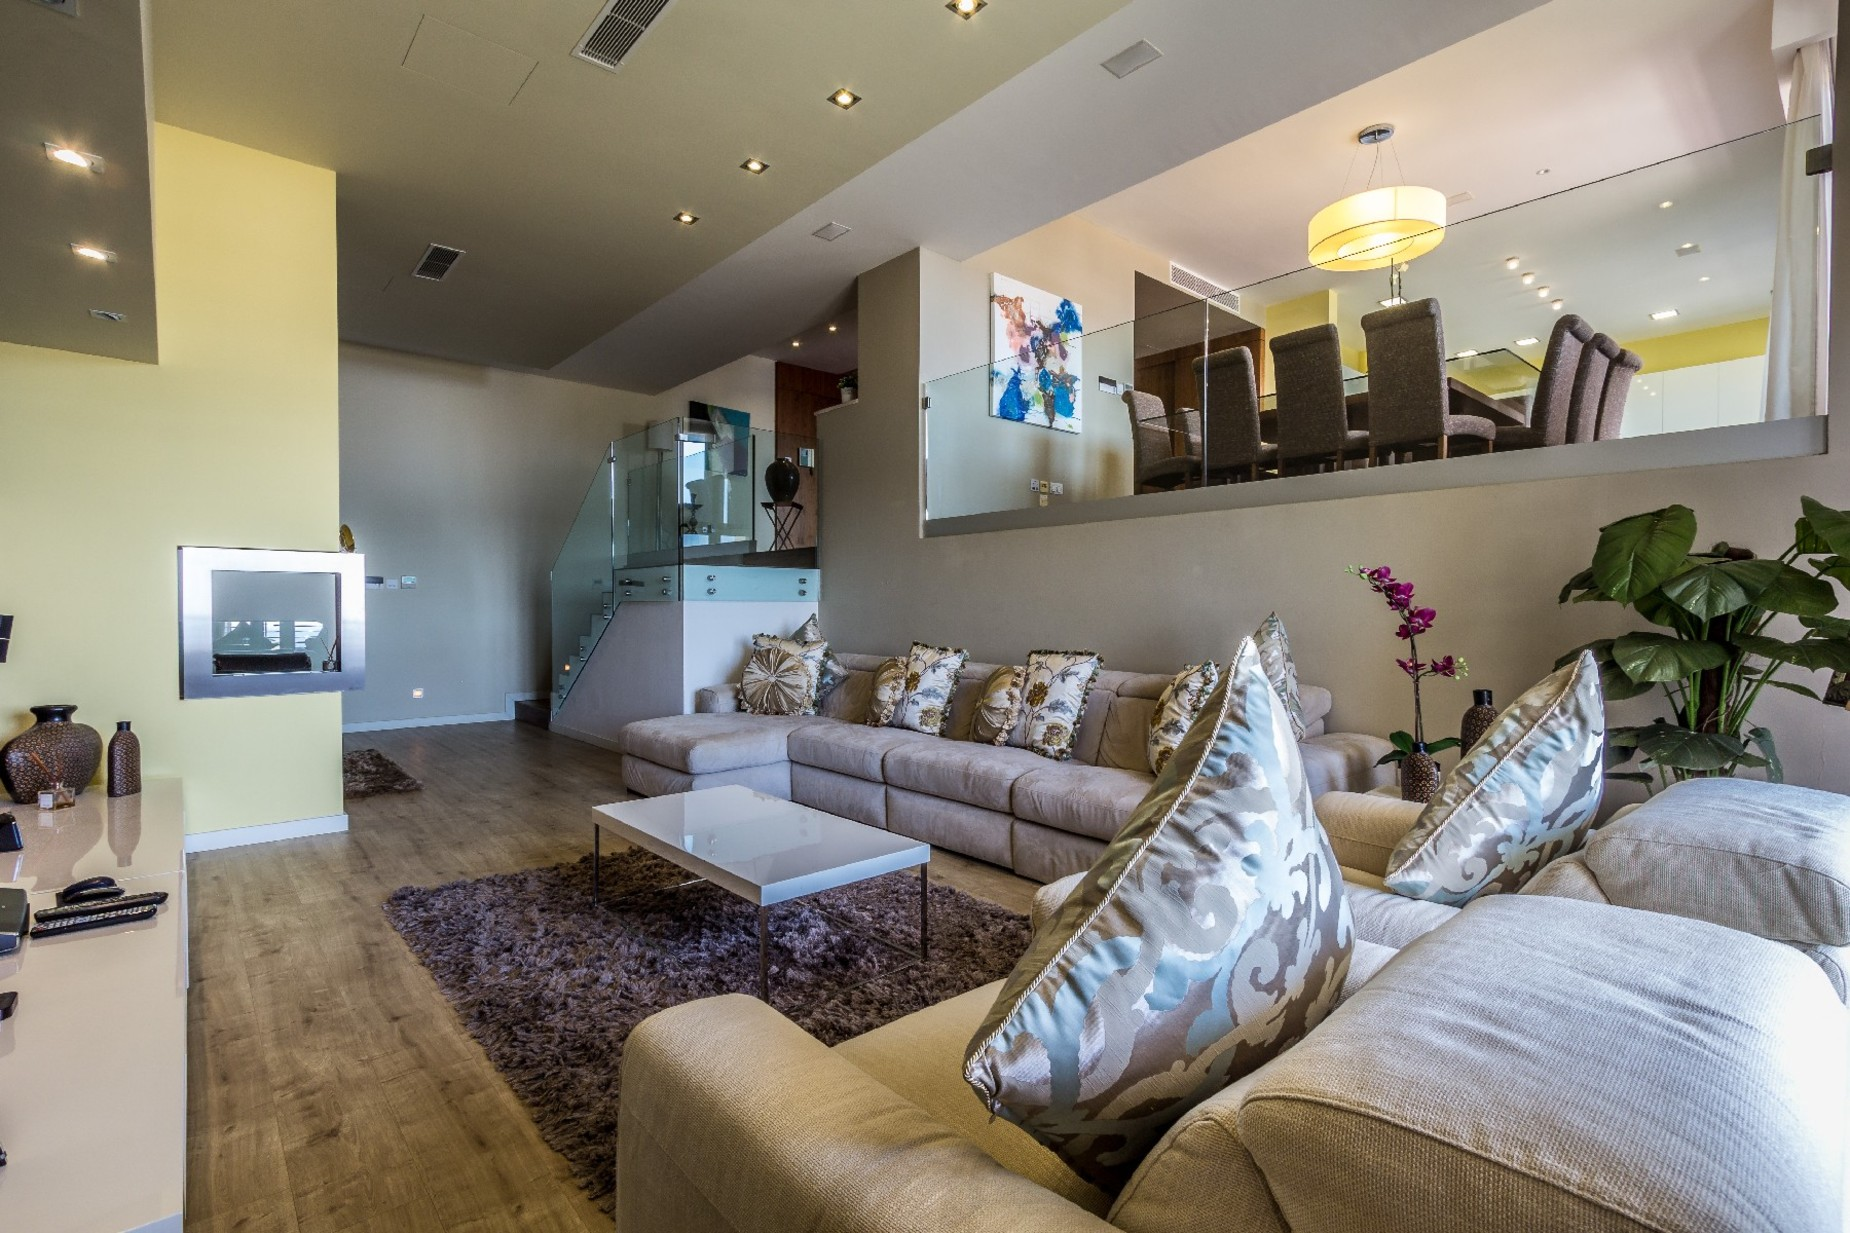 4 bed Apartment For Sale in Sliema, Sliema - thumb 6